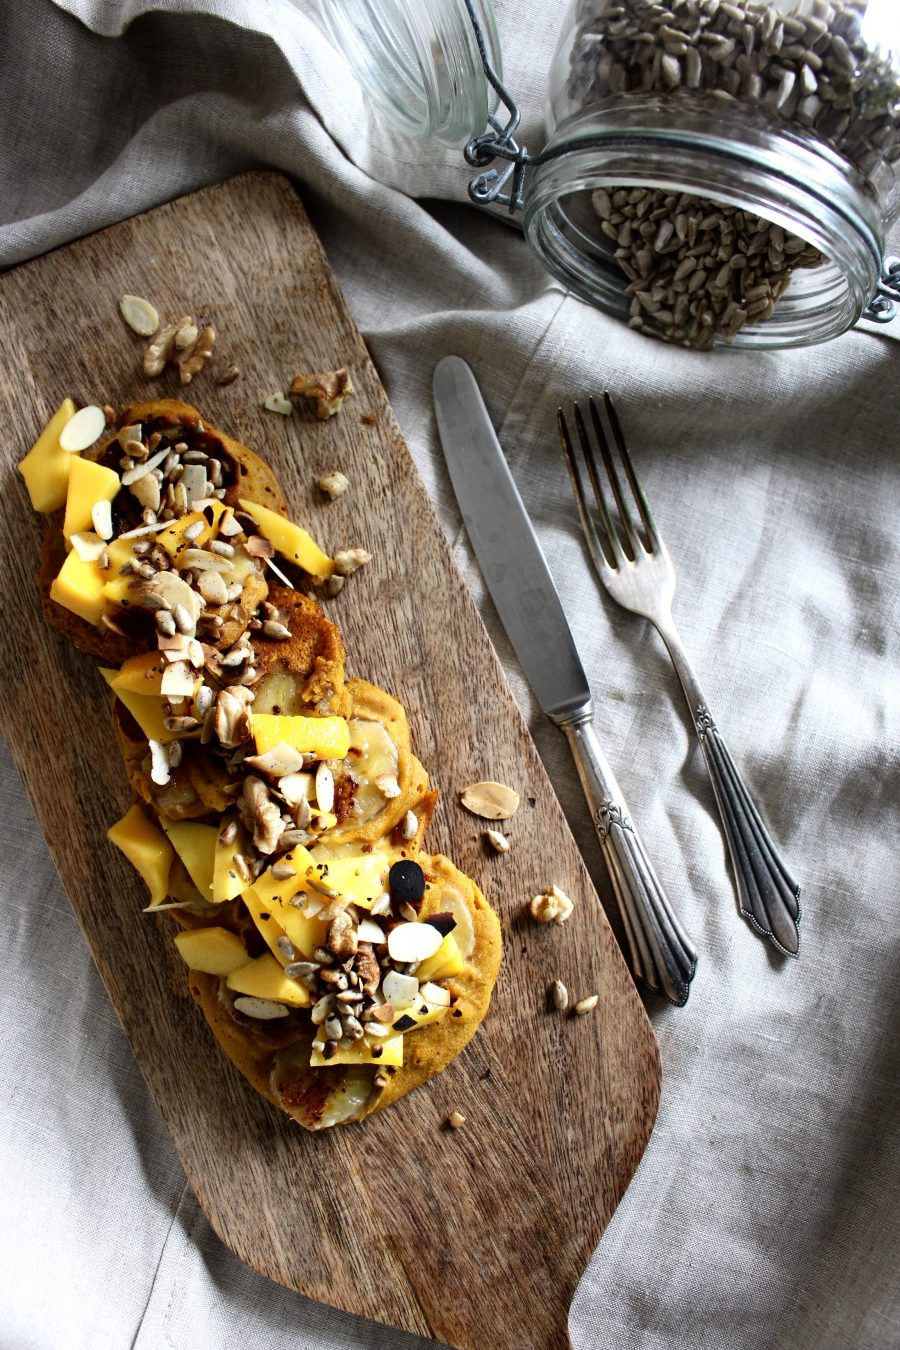 Pumpkin-Banana-Pancakes with fresh Mango